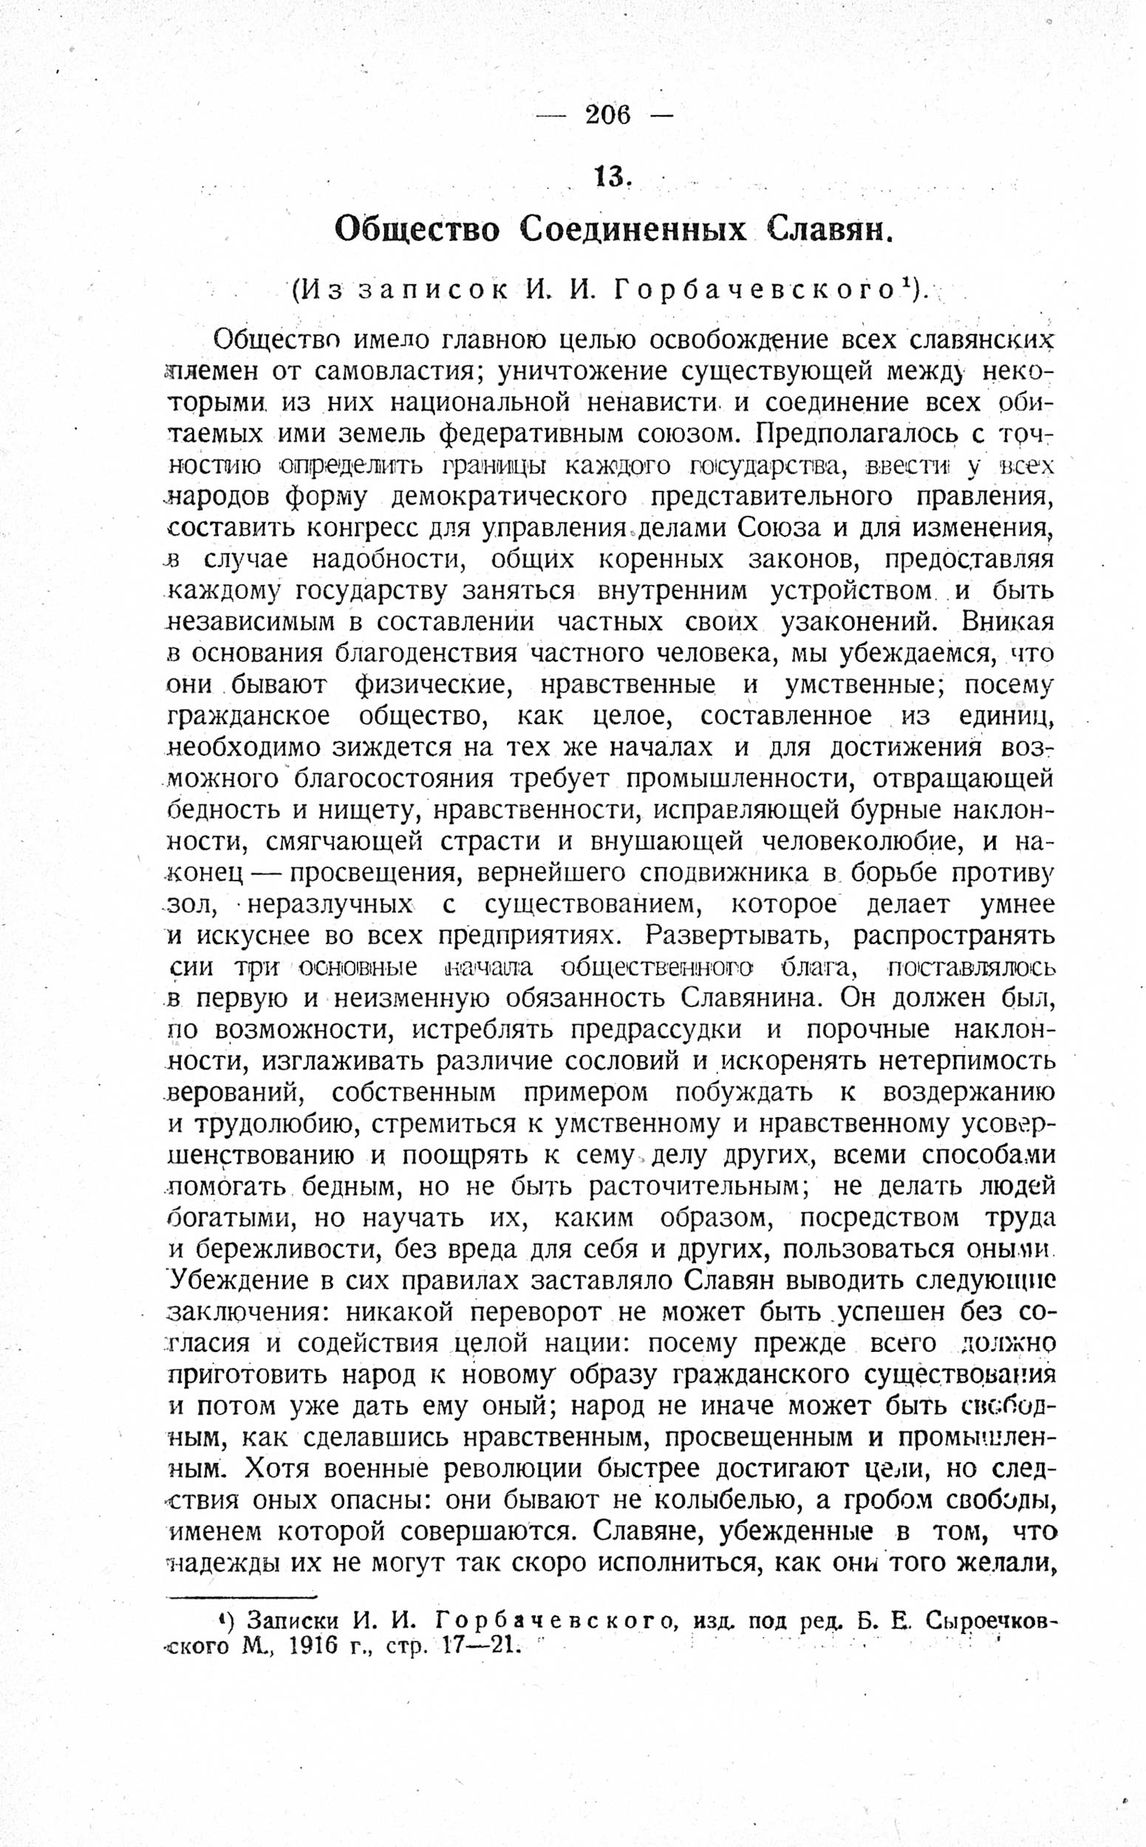 http://elib.shpl.ru/pages/625789/zooms/7